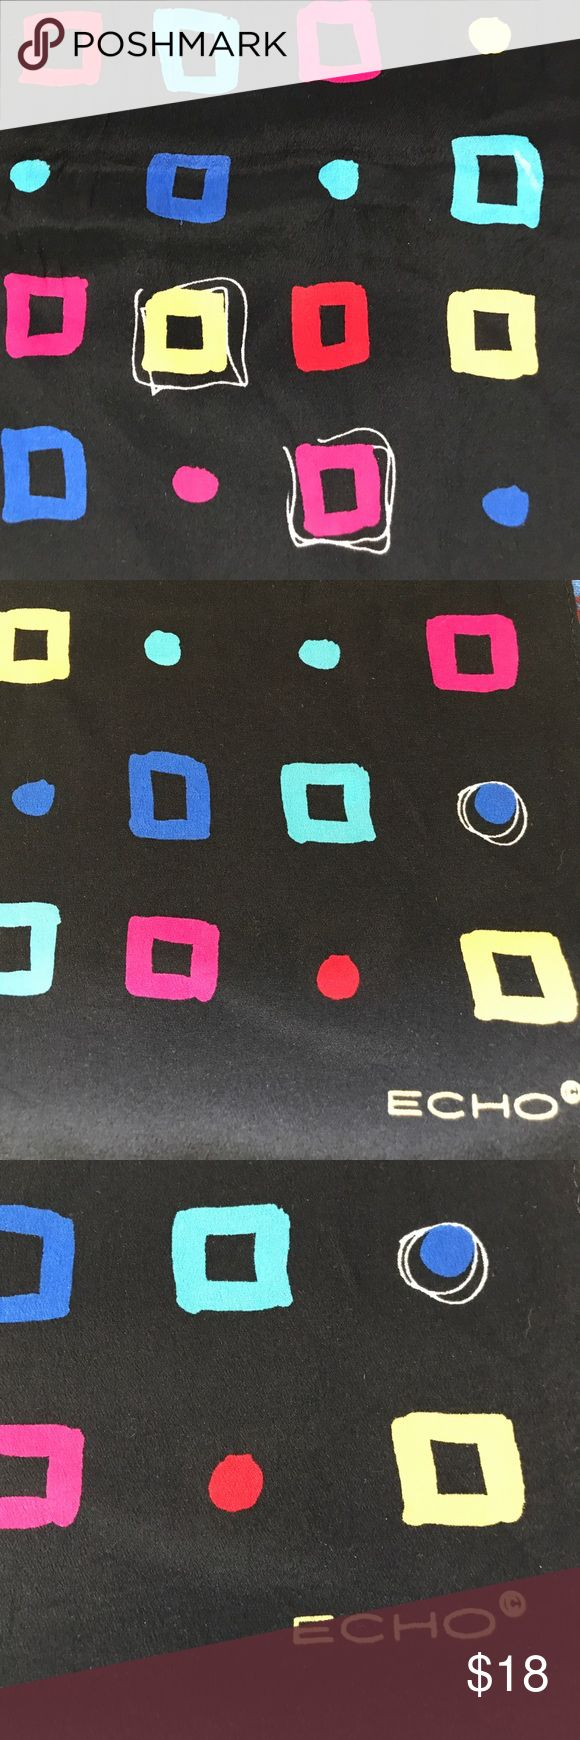 "Vintage Echo silk rectangle scarf Vintage Silk Echo geometric pattern rectangle scarf. Circa 80s . Beautiful brights colors on black. EUC. 56"" length, 15"" wide. Echo Accessories Scarves & Wraps"